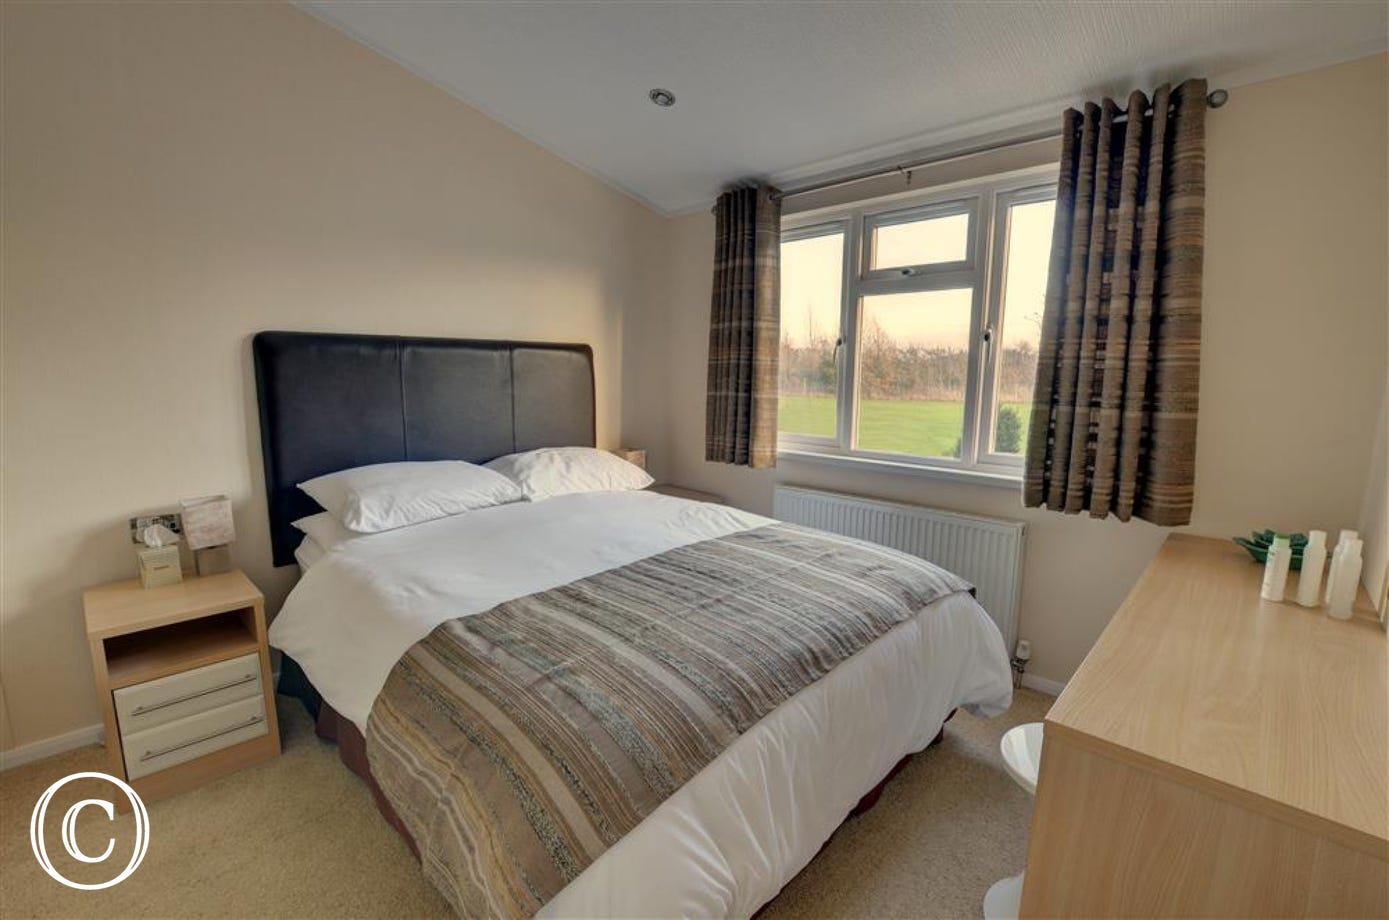 This main double bedded room with views over the lawn areas and dressing table will mean you can get ready for those country walks.